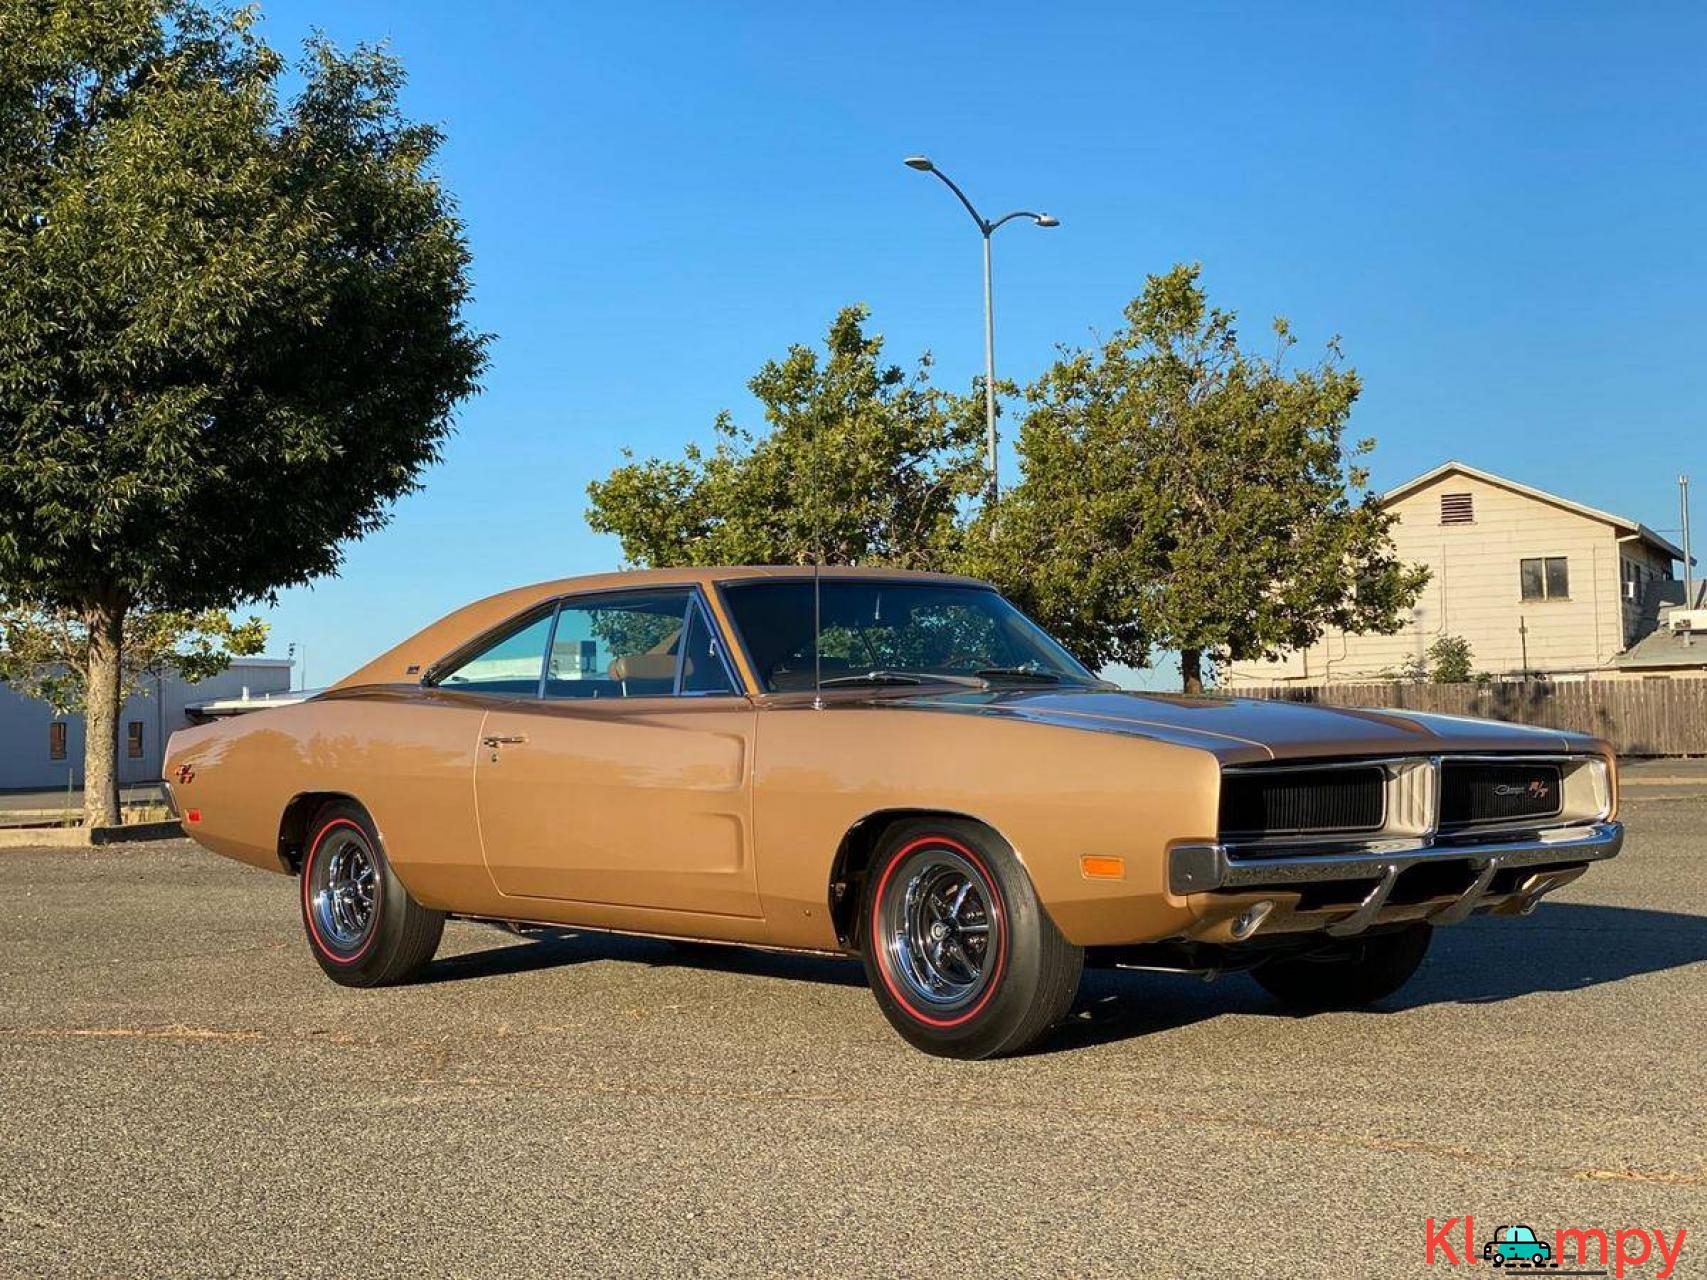 1969 Dodge Charger RT SE 440 375hp High Performance - 11/20